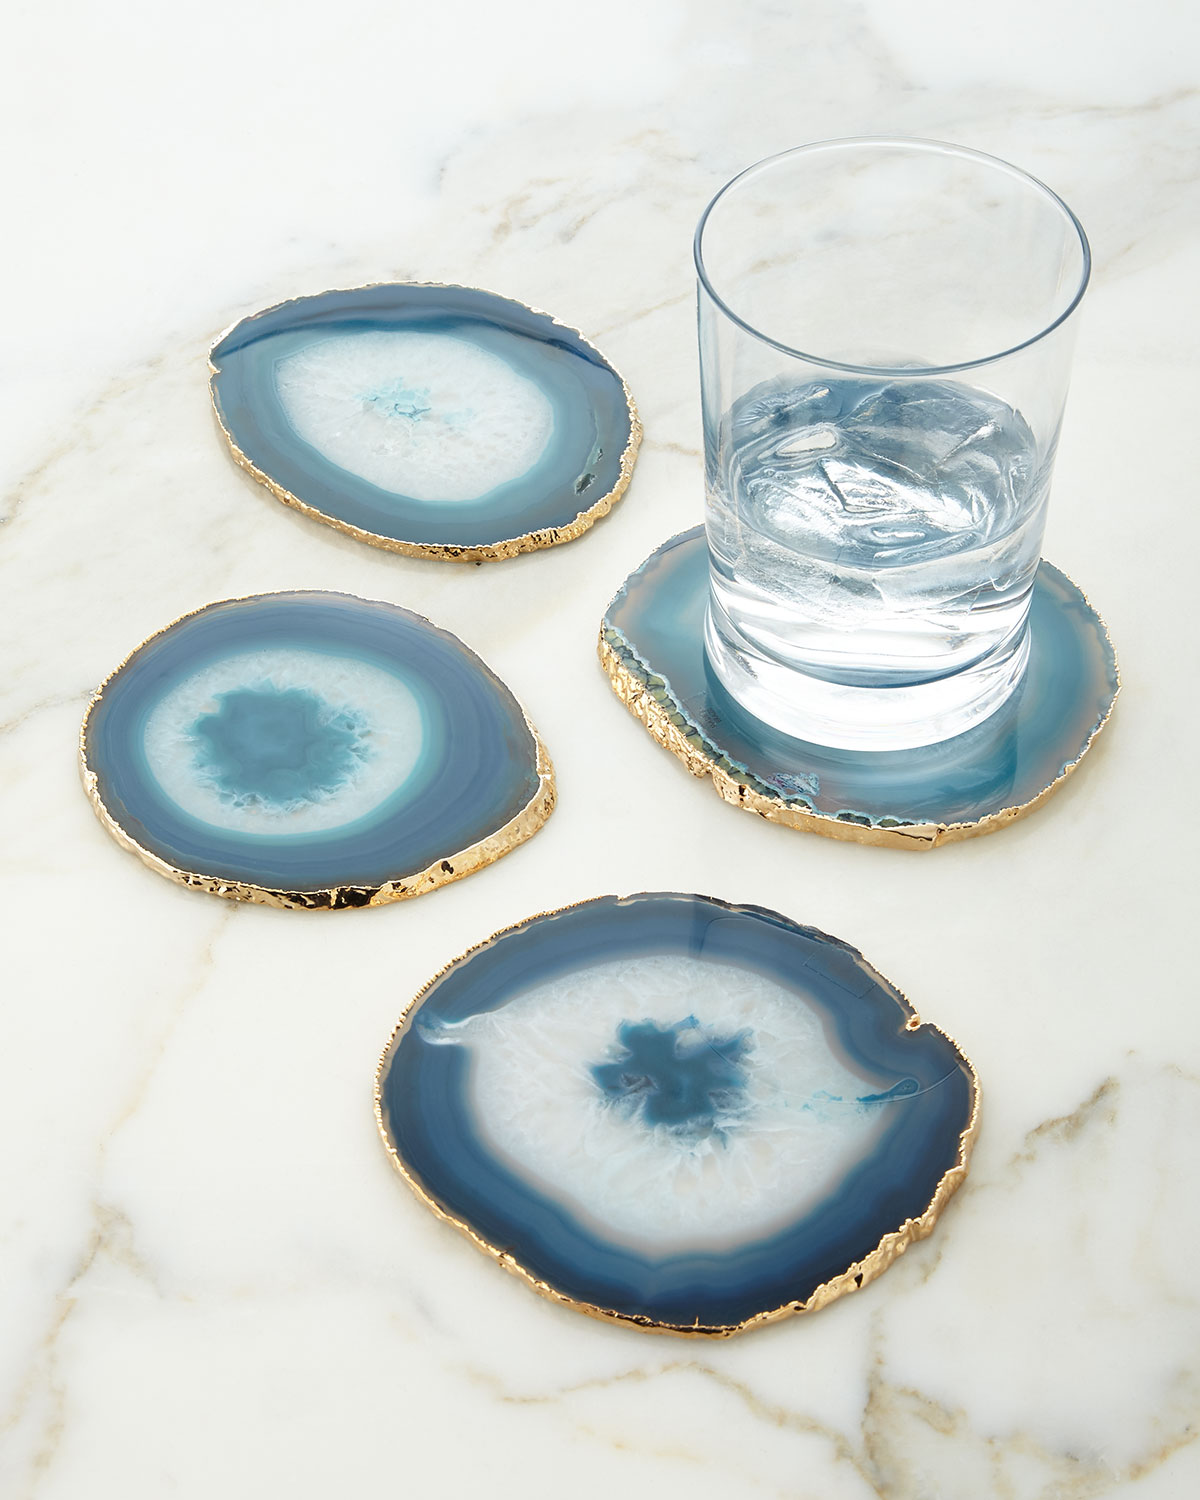 Blue Agate Coasters, Set of 4, by Aerin Lauder - Little Luxuries Gift Guide - Good Things in Small Packages